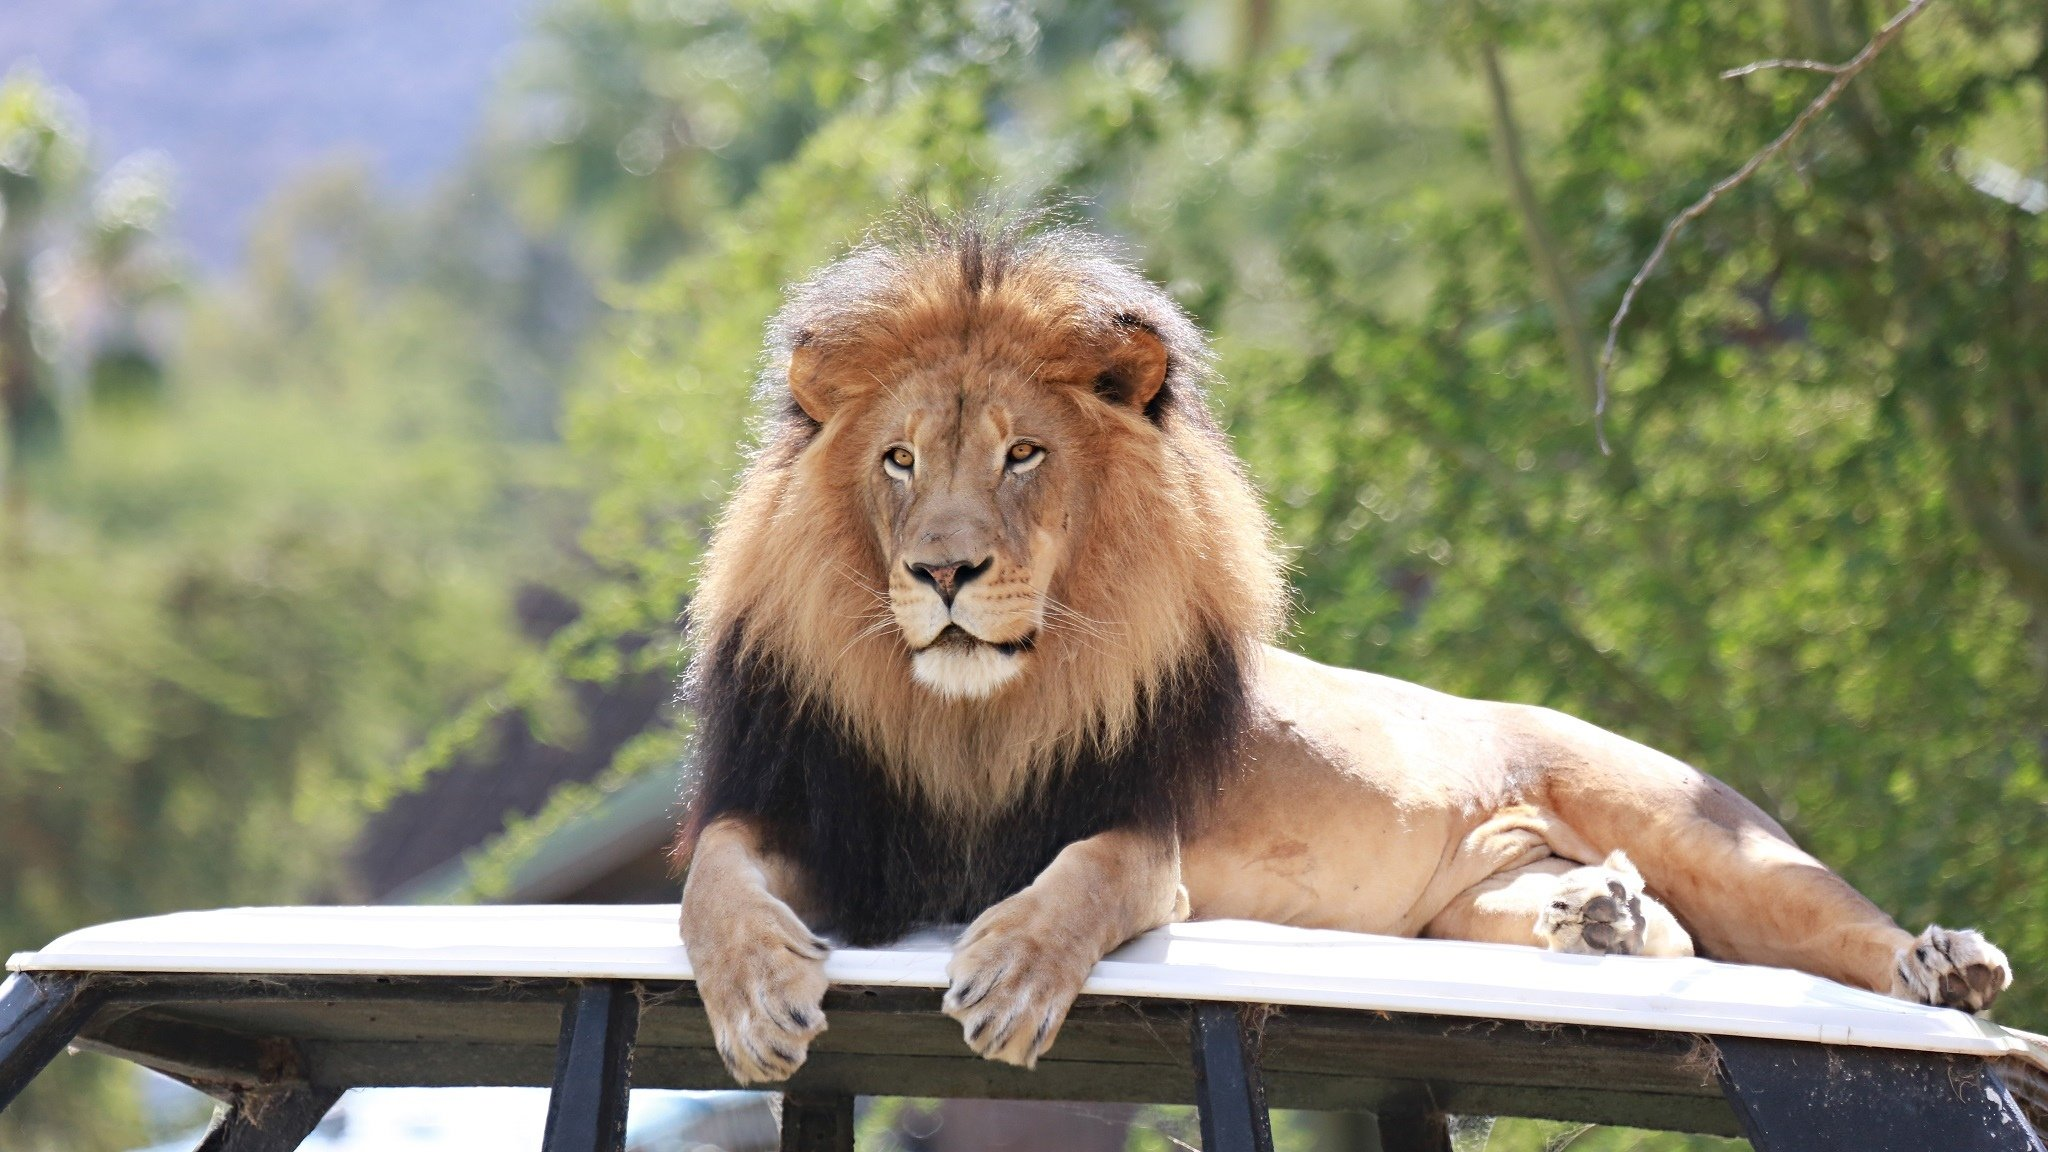 Wallpaper 2048x1152 Px Carnivore Cat Lion Lying Mane Muzzle Vacation Wild Zoo 2048x1152 Wallpaperup 1915613 Hd Wallpapers Wallhere